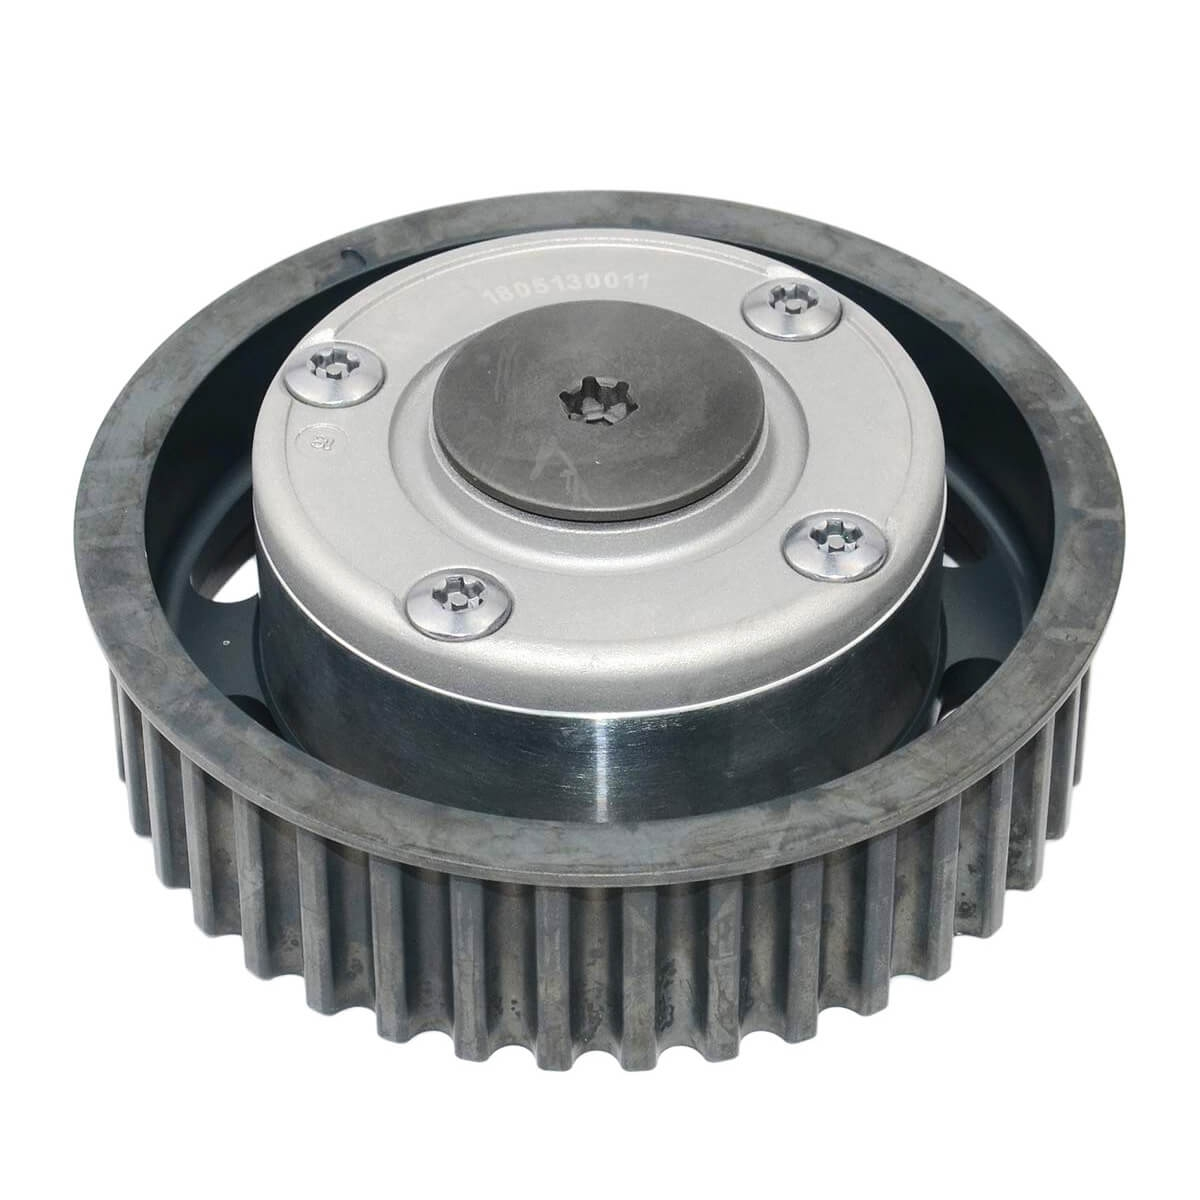 CITROEN C4 SPACETOURER Cam Dephaser Pulley